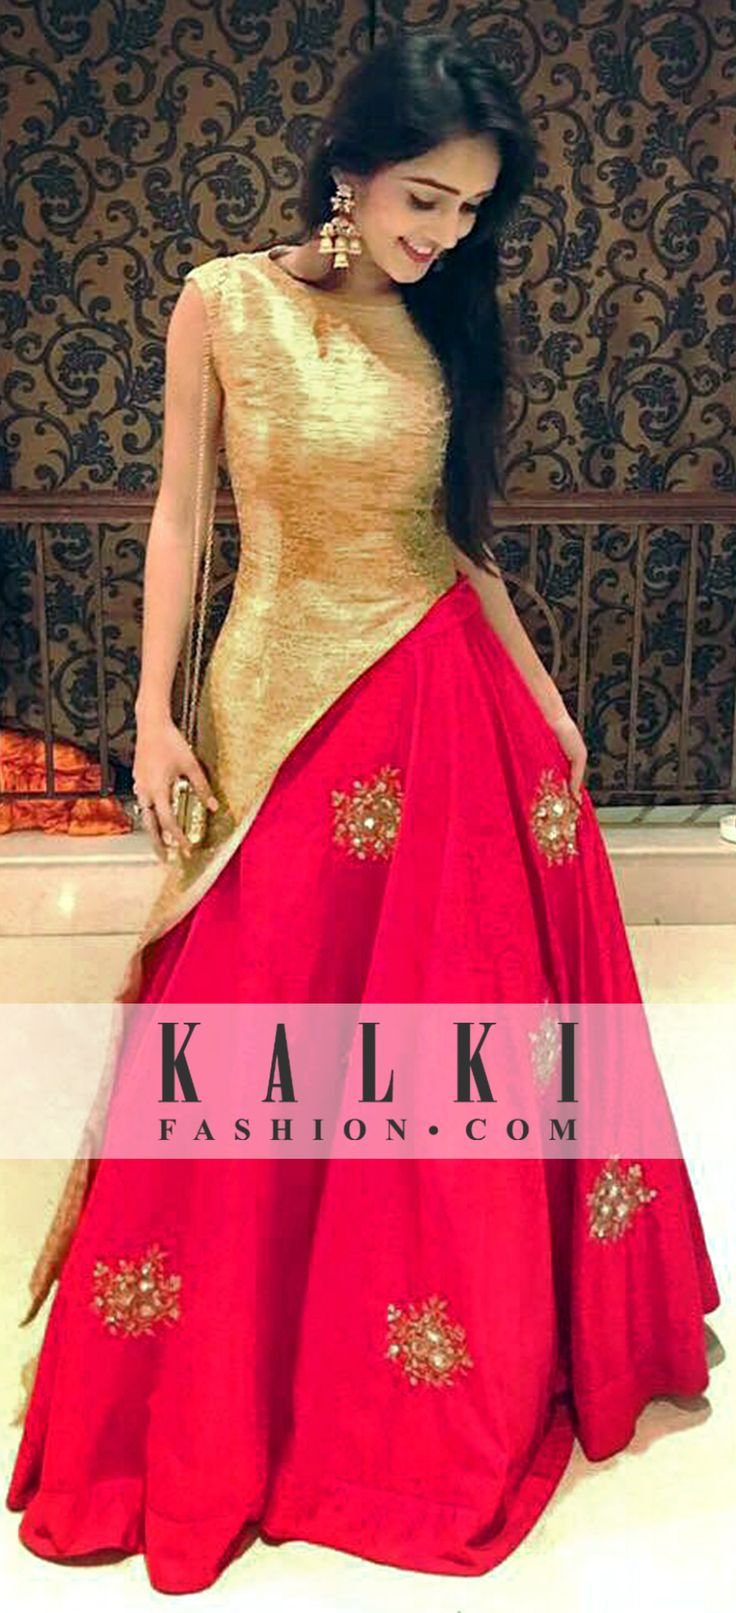 Tanya Sharma SKU - 362923 PRICE - Rs. 19,990